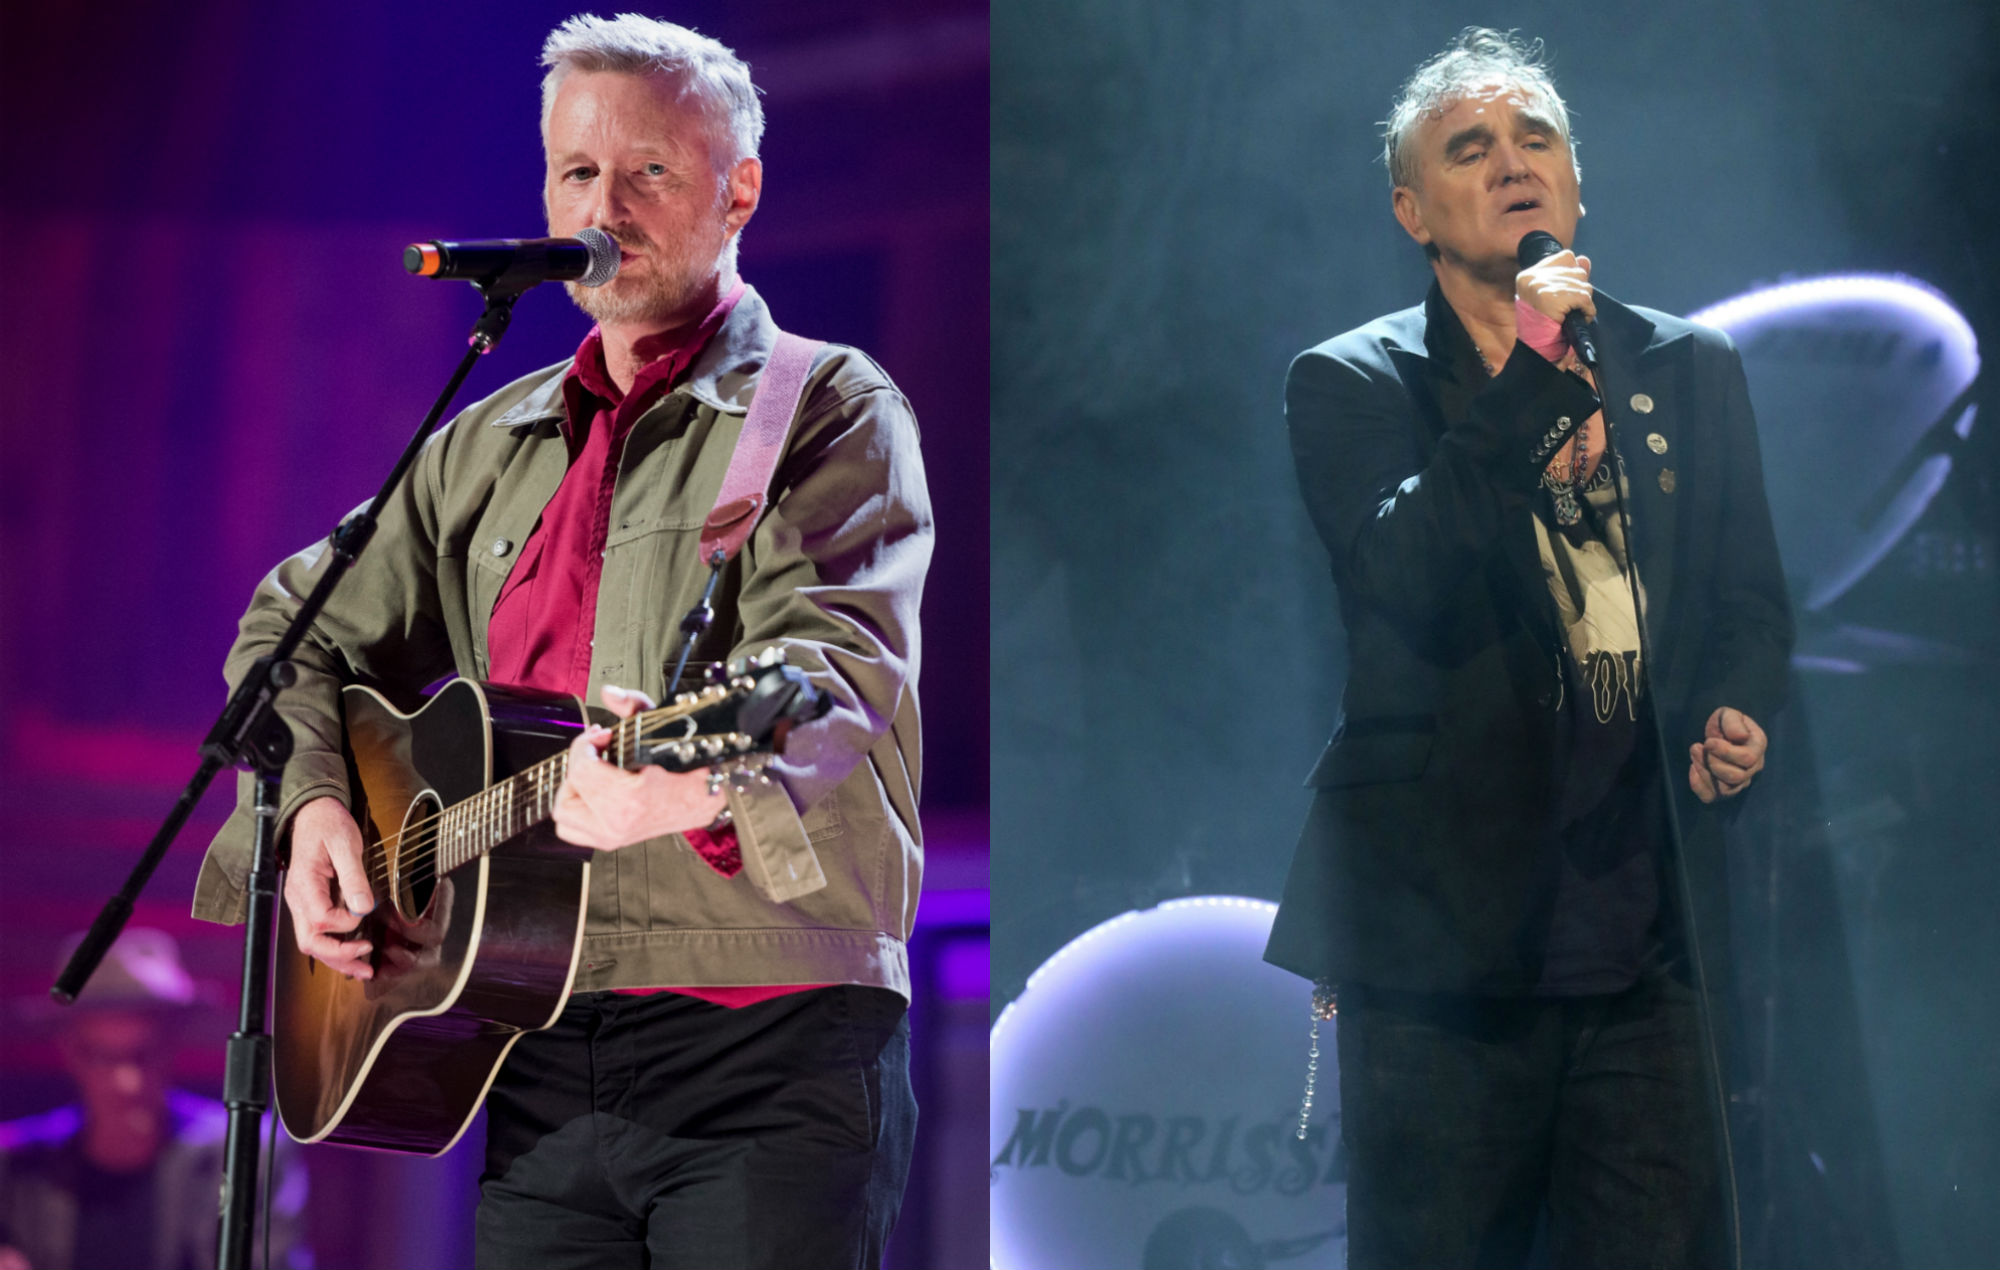 """Billy Bragg on Morrissey: """"He's become the Oswald Mosley of pop"""""""